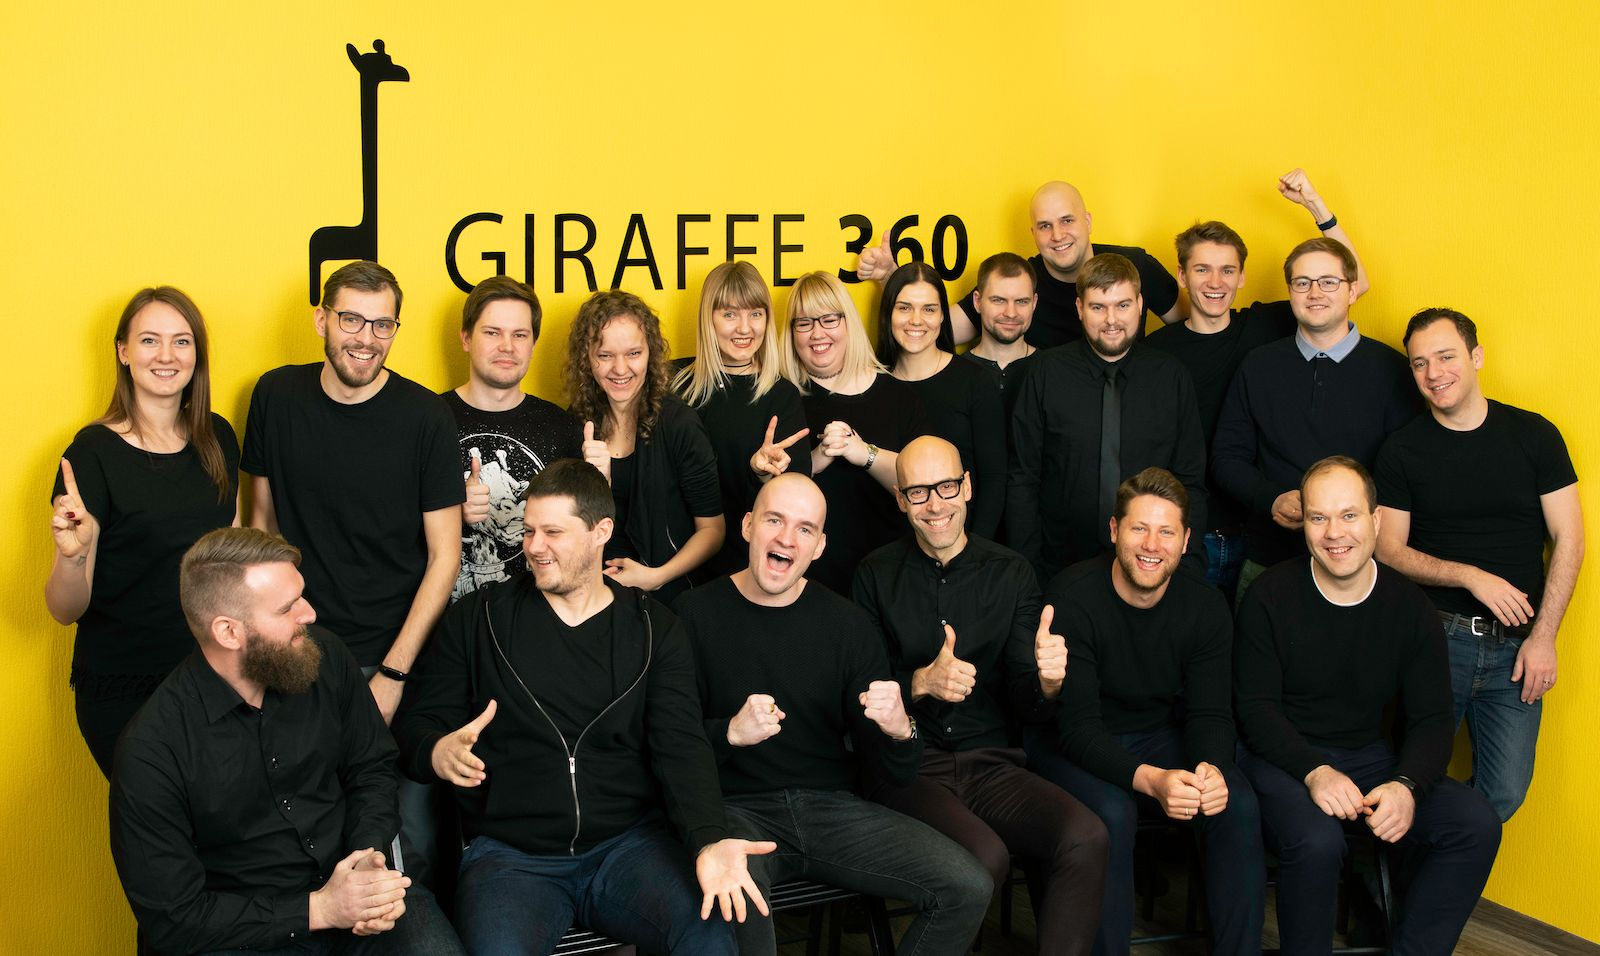 £1M Investment & Move To London Spell Great Things for Giraffe360